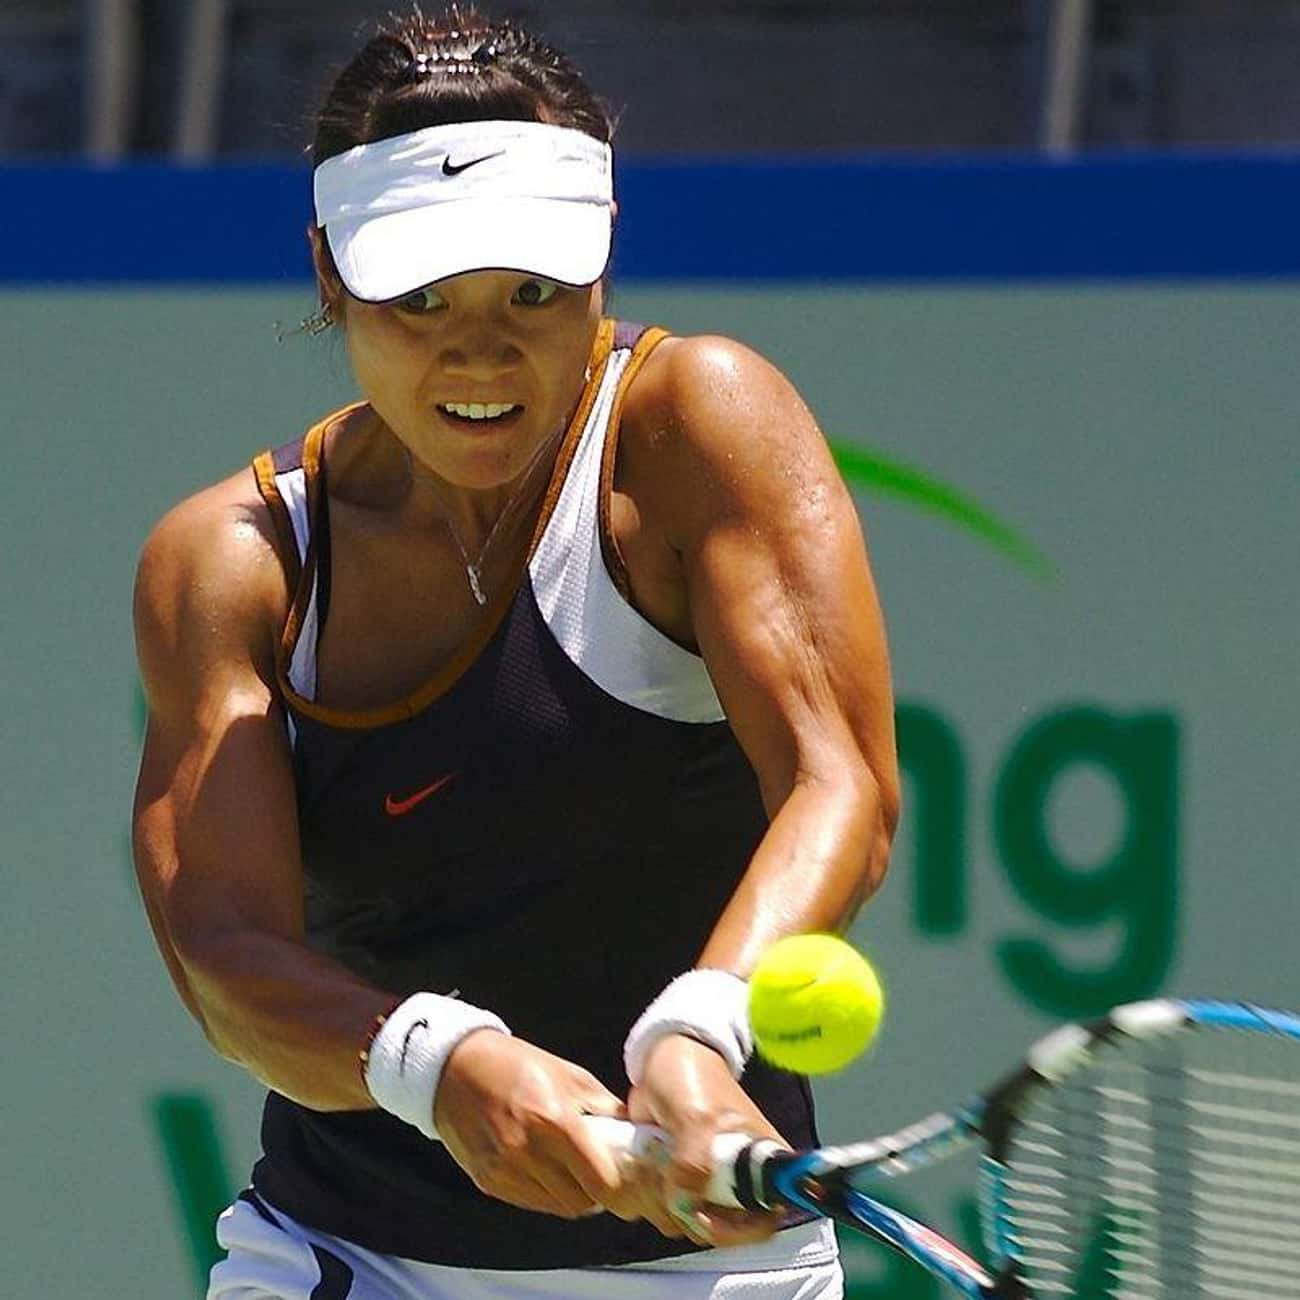 Li Na is listed (or ranked) 1 on the list The Best Tennis Players from China